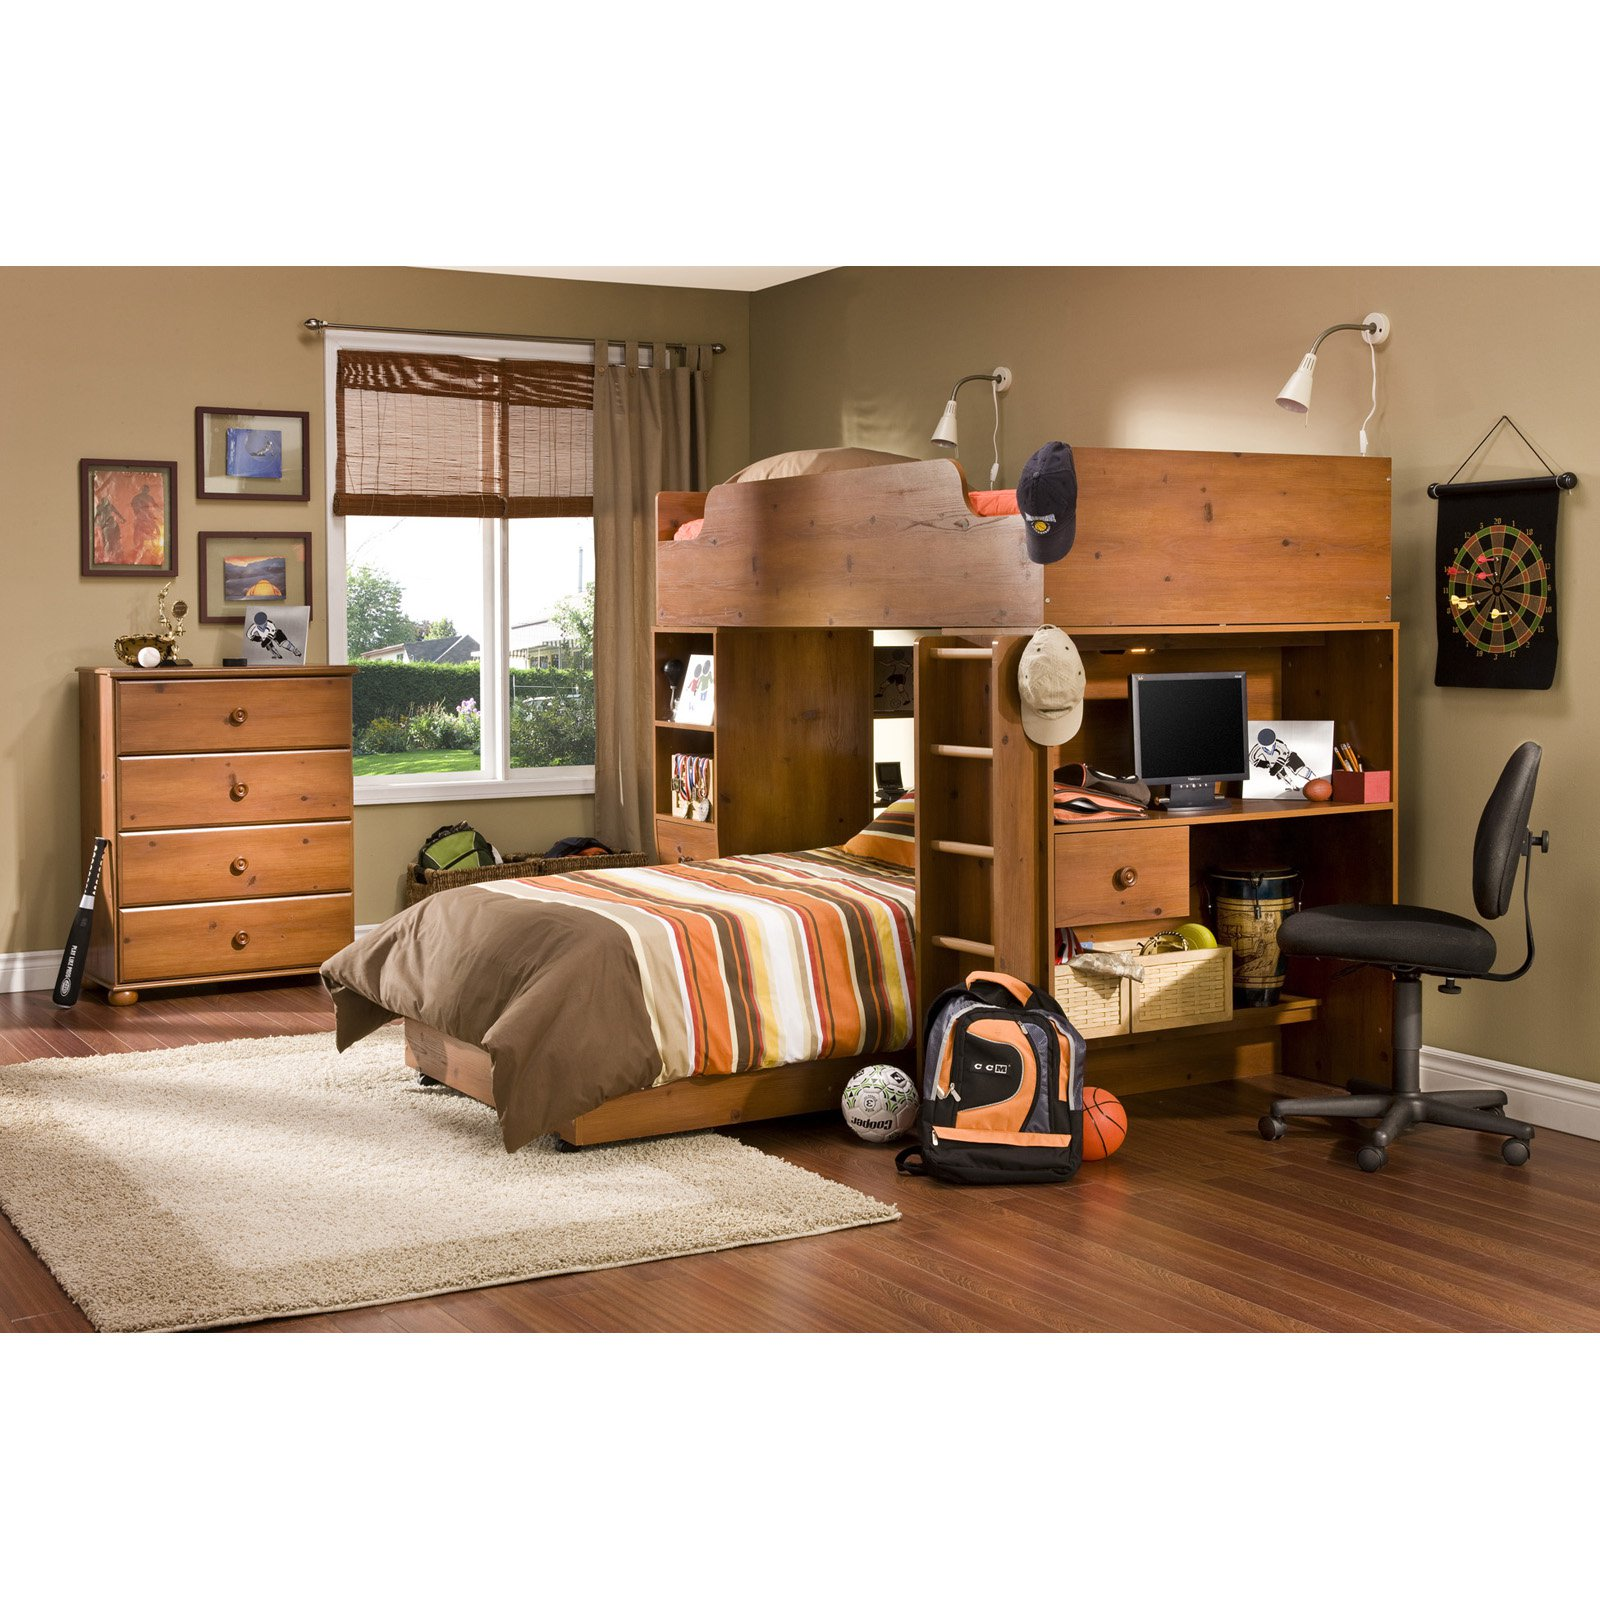 South Shore Twin Loft Bed